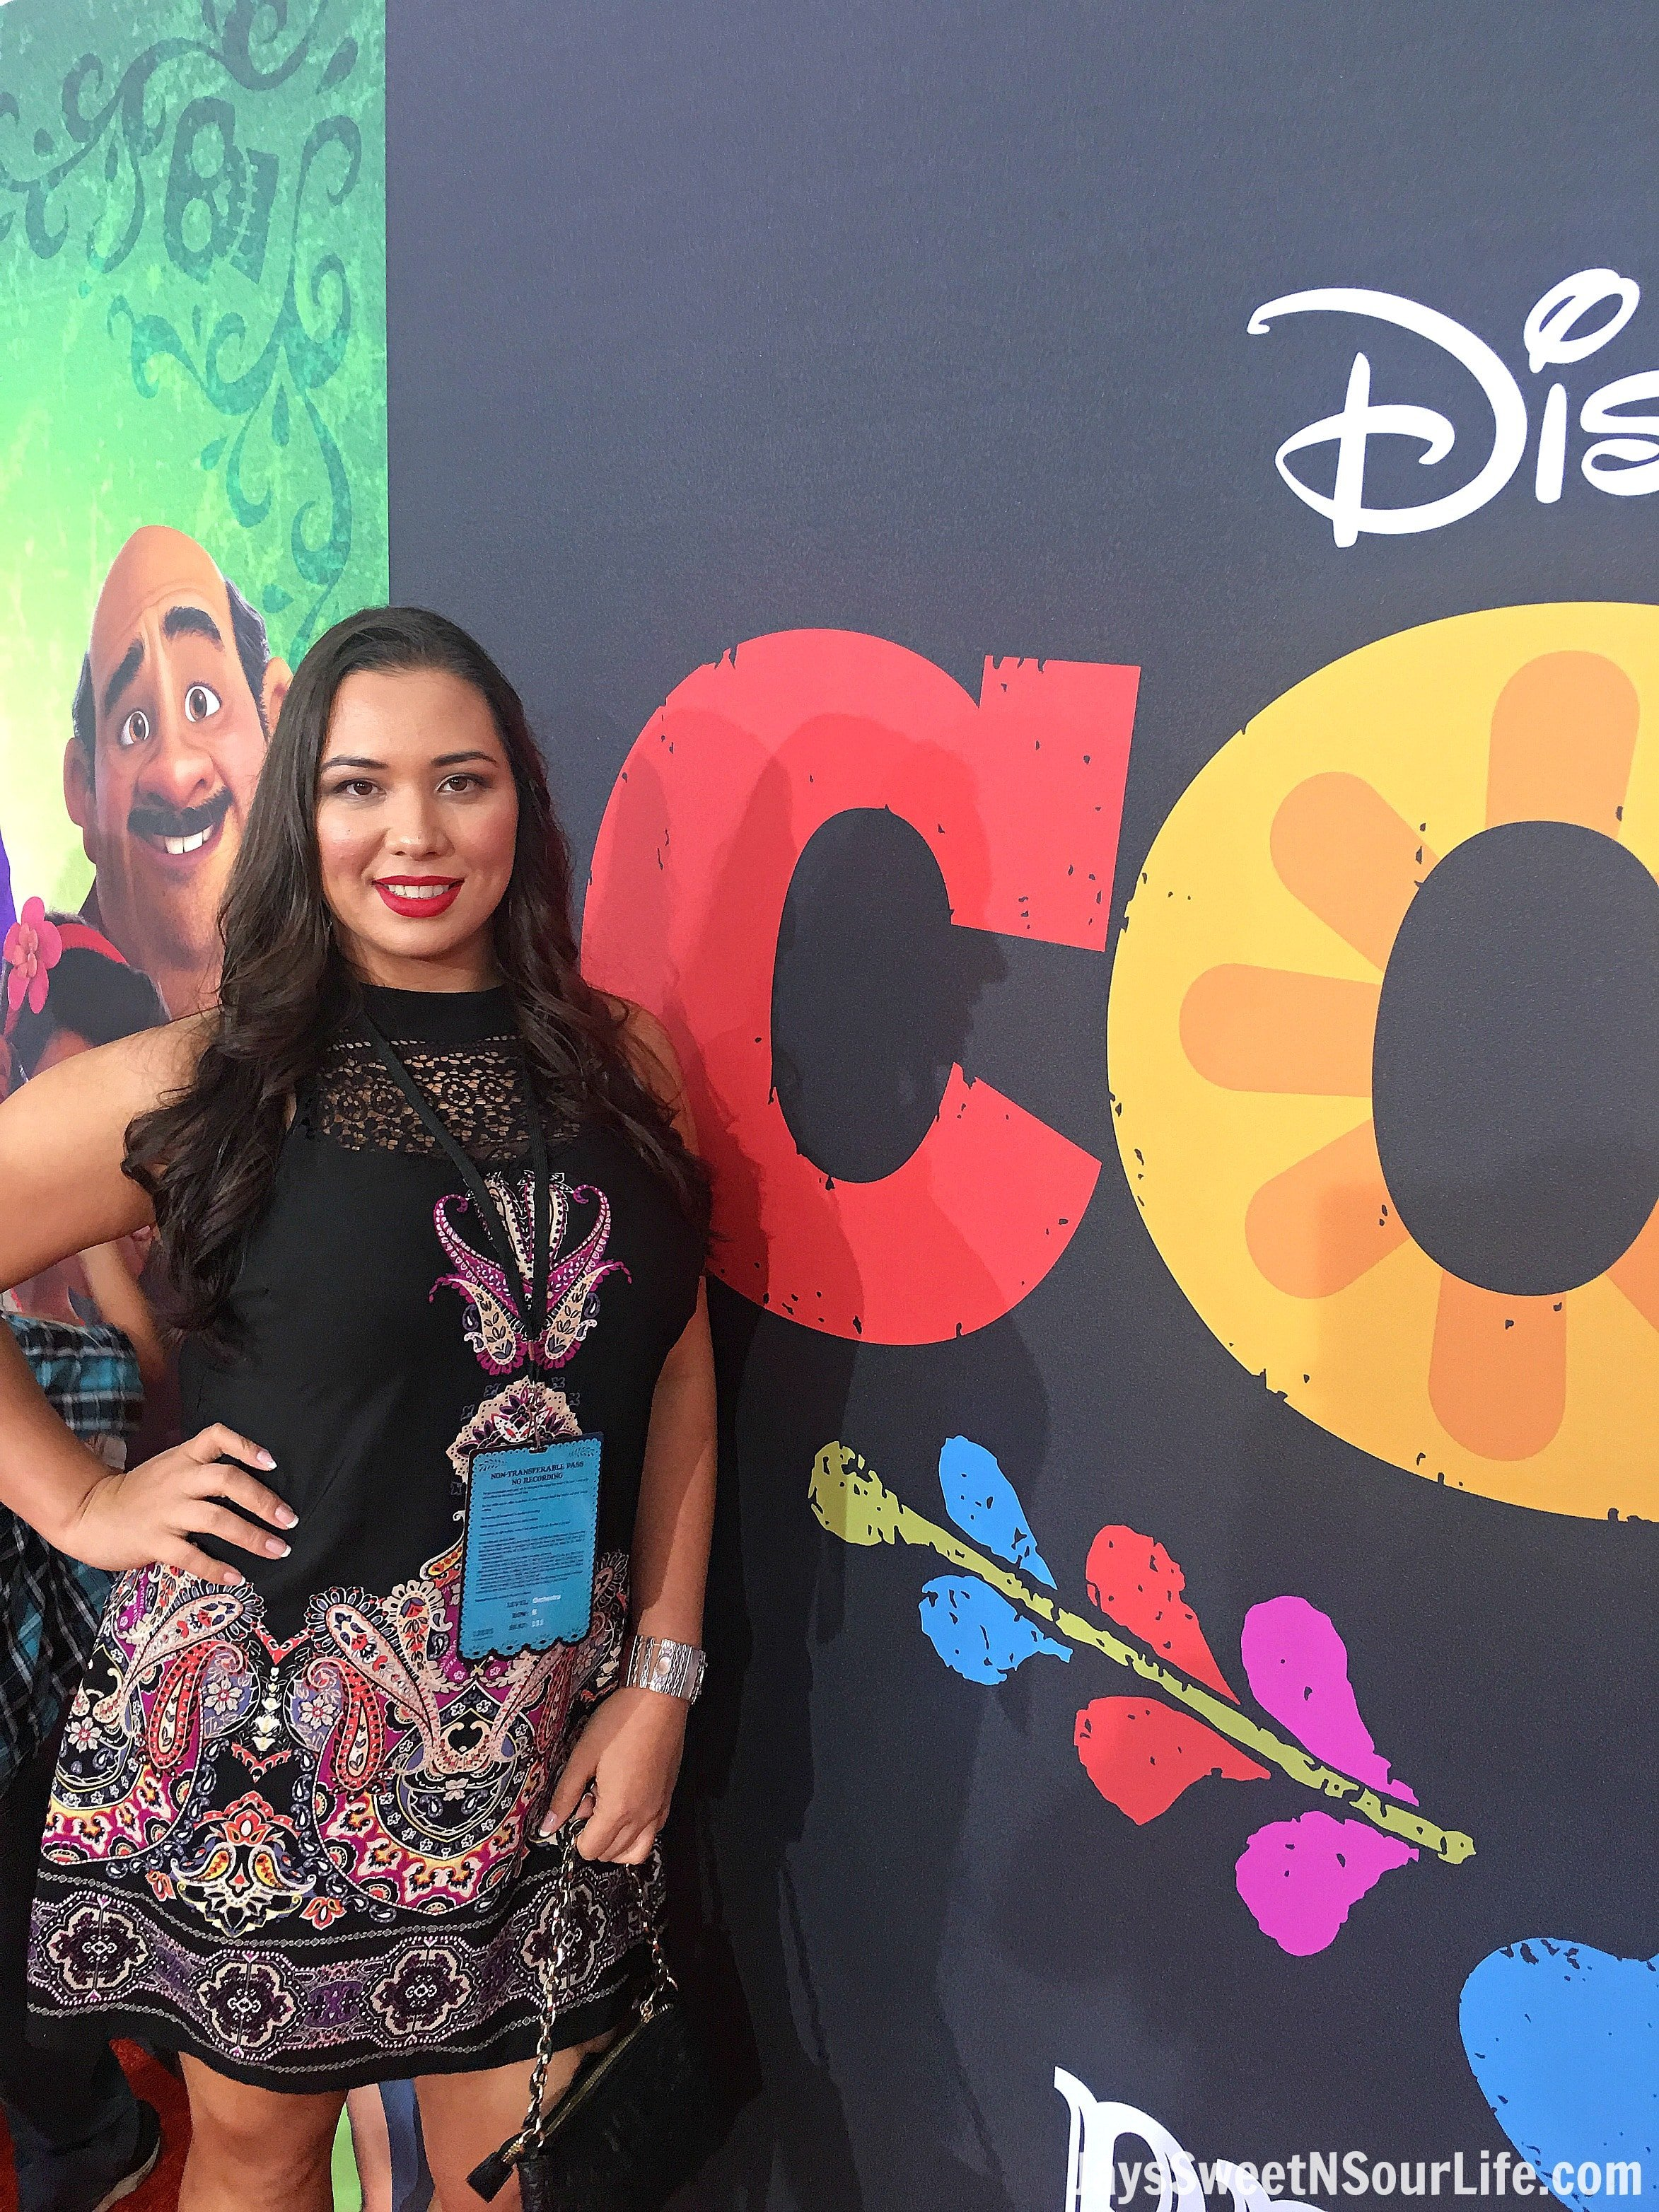 My Expierence at Disney Pixar's Coco Premiere in LA